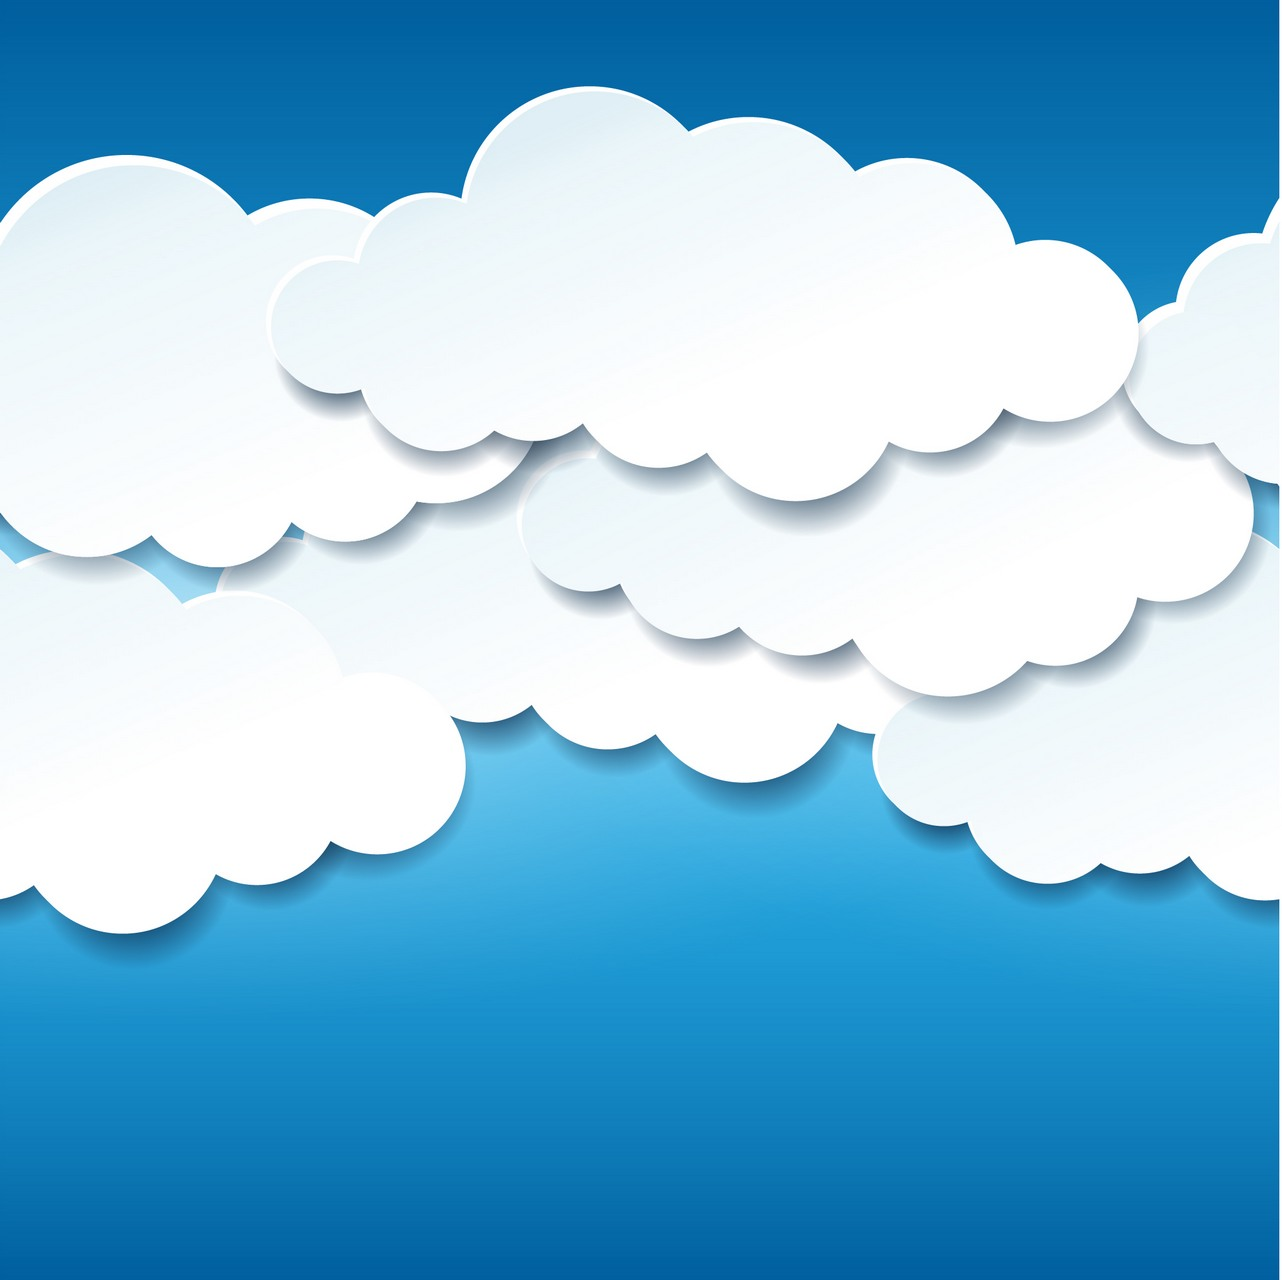 cloud background clipart.